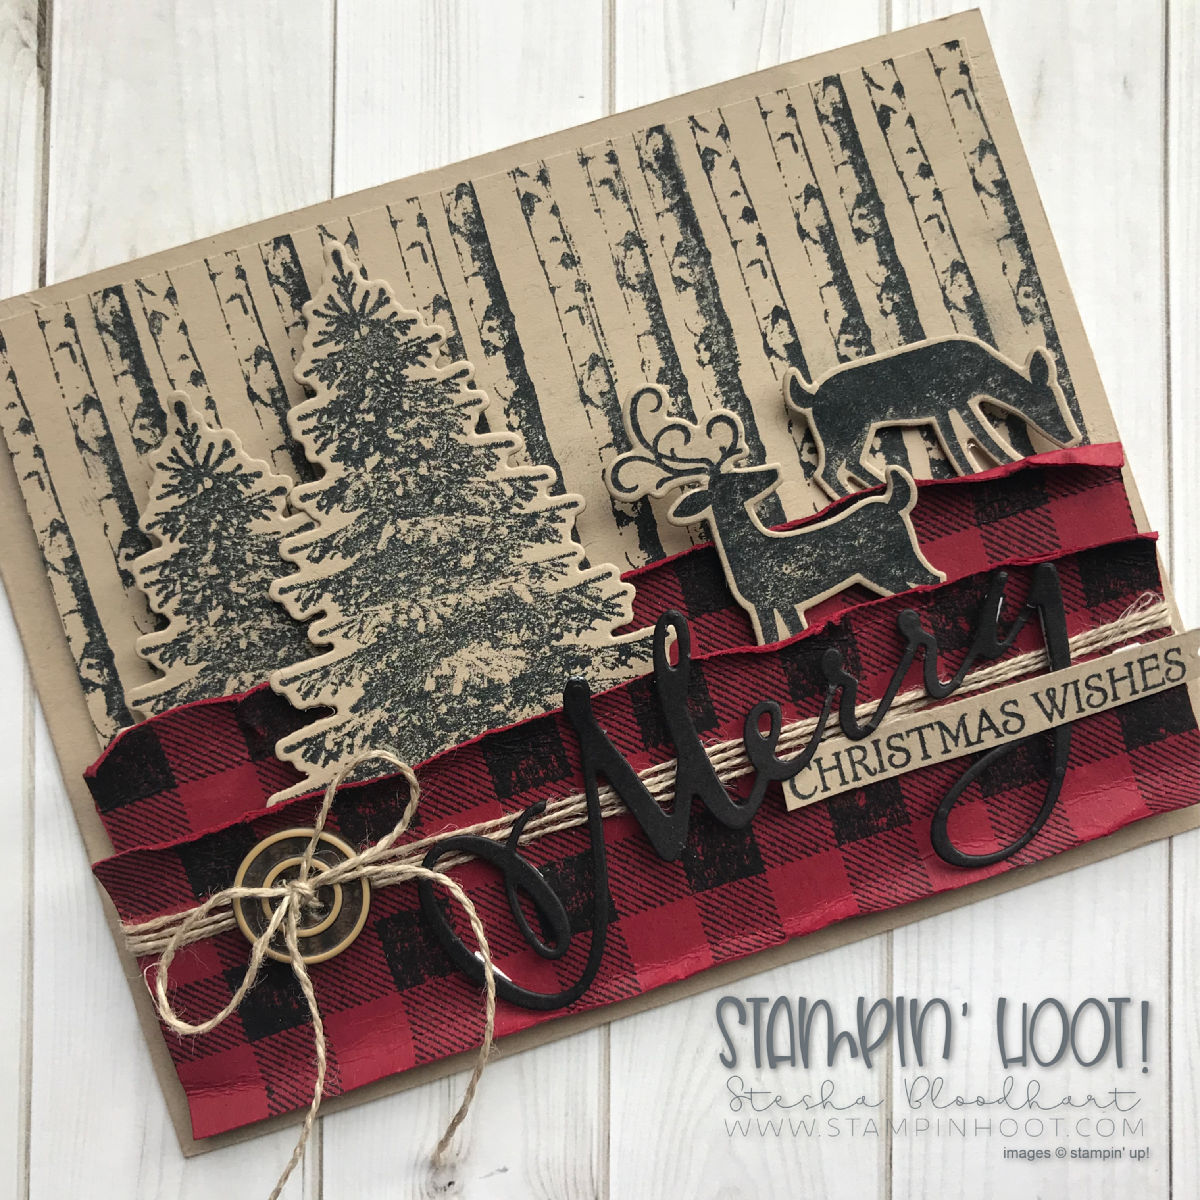 Winter Woods Bundle, Buffalo Check Stamp, Dashing Deer Bundle, Merry Christmas to All Bundle by Stampin' Up! for a Northwoods Christmas Card by Stampin' Hoot! Stesha Bloodhart #steshabloodhart #stampinhoot